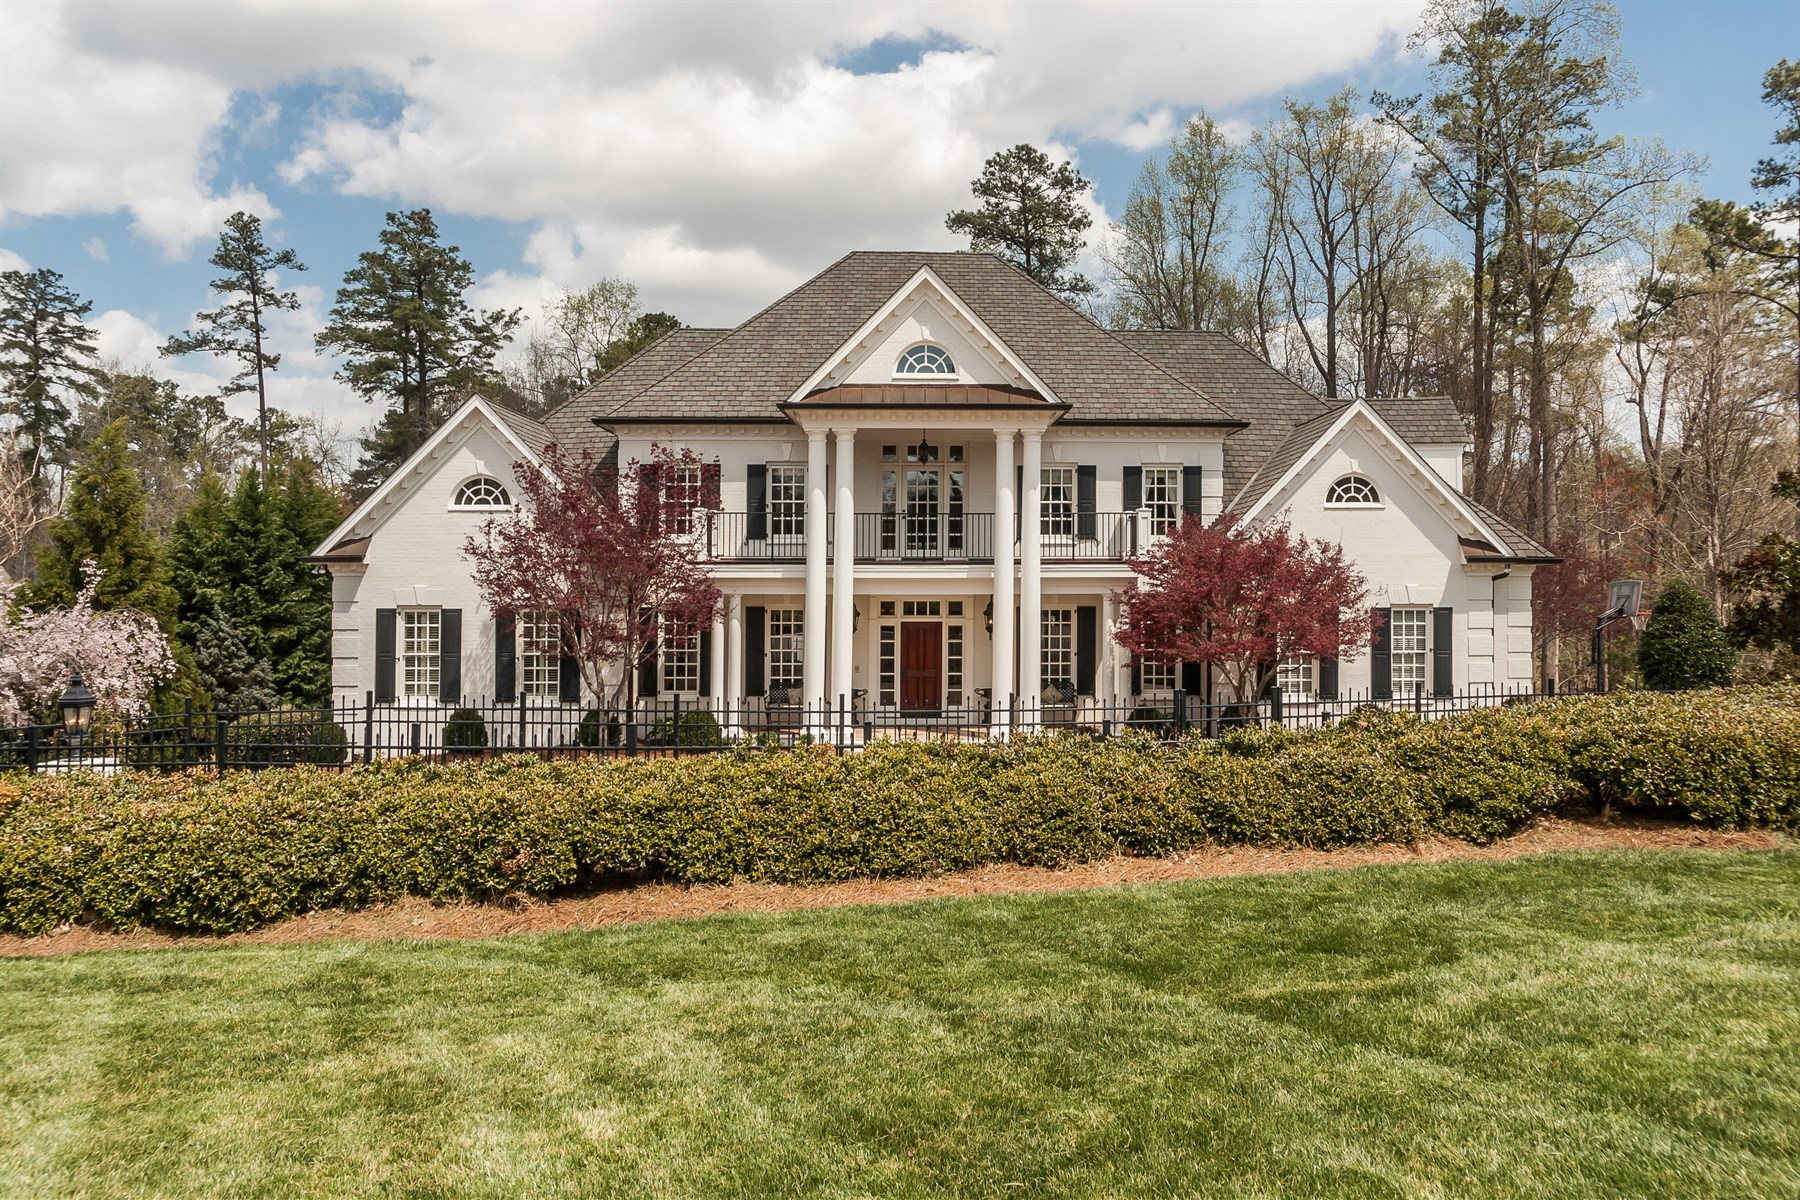 Single Family Home for Sale at Beautiful Devon Estate 4708 Wynneford Way Raleigh, North Carolina 27614 United States